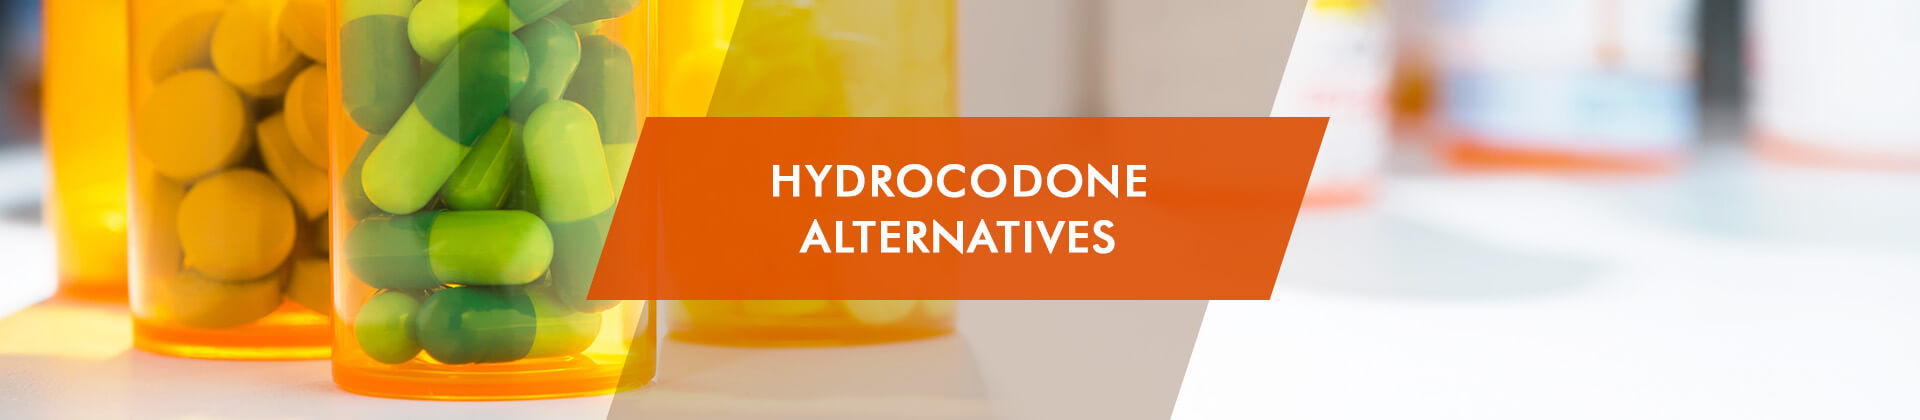 alternatives to hydrocodone